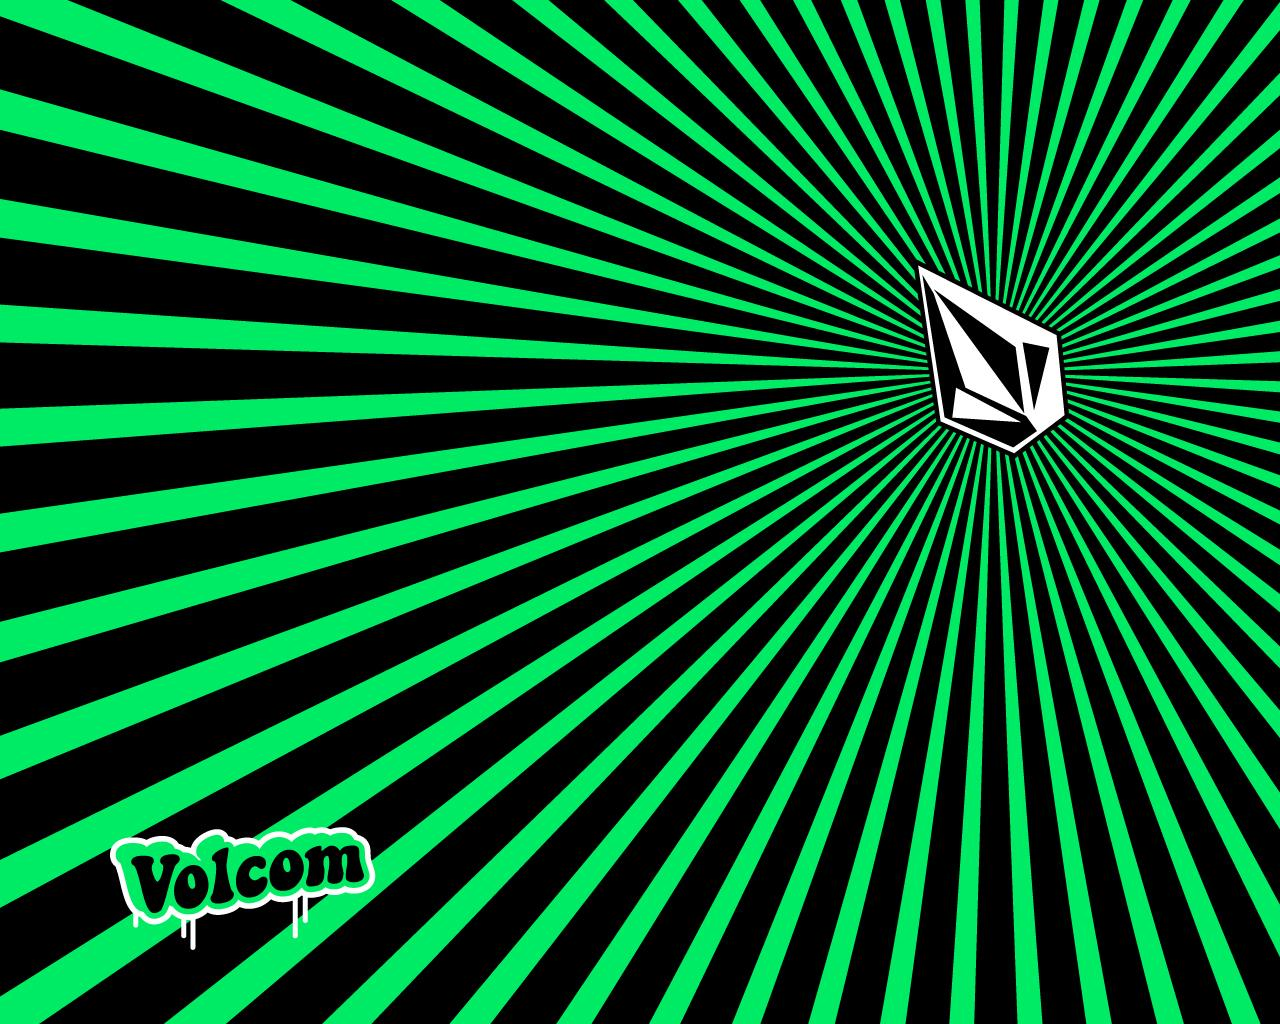 1280x1024 - Volcom Backgrounds 16